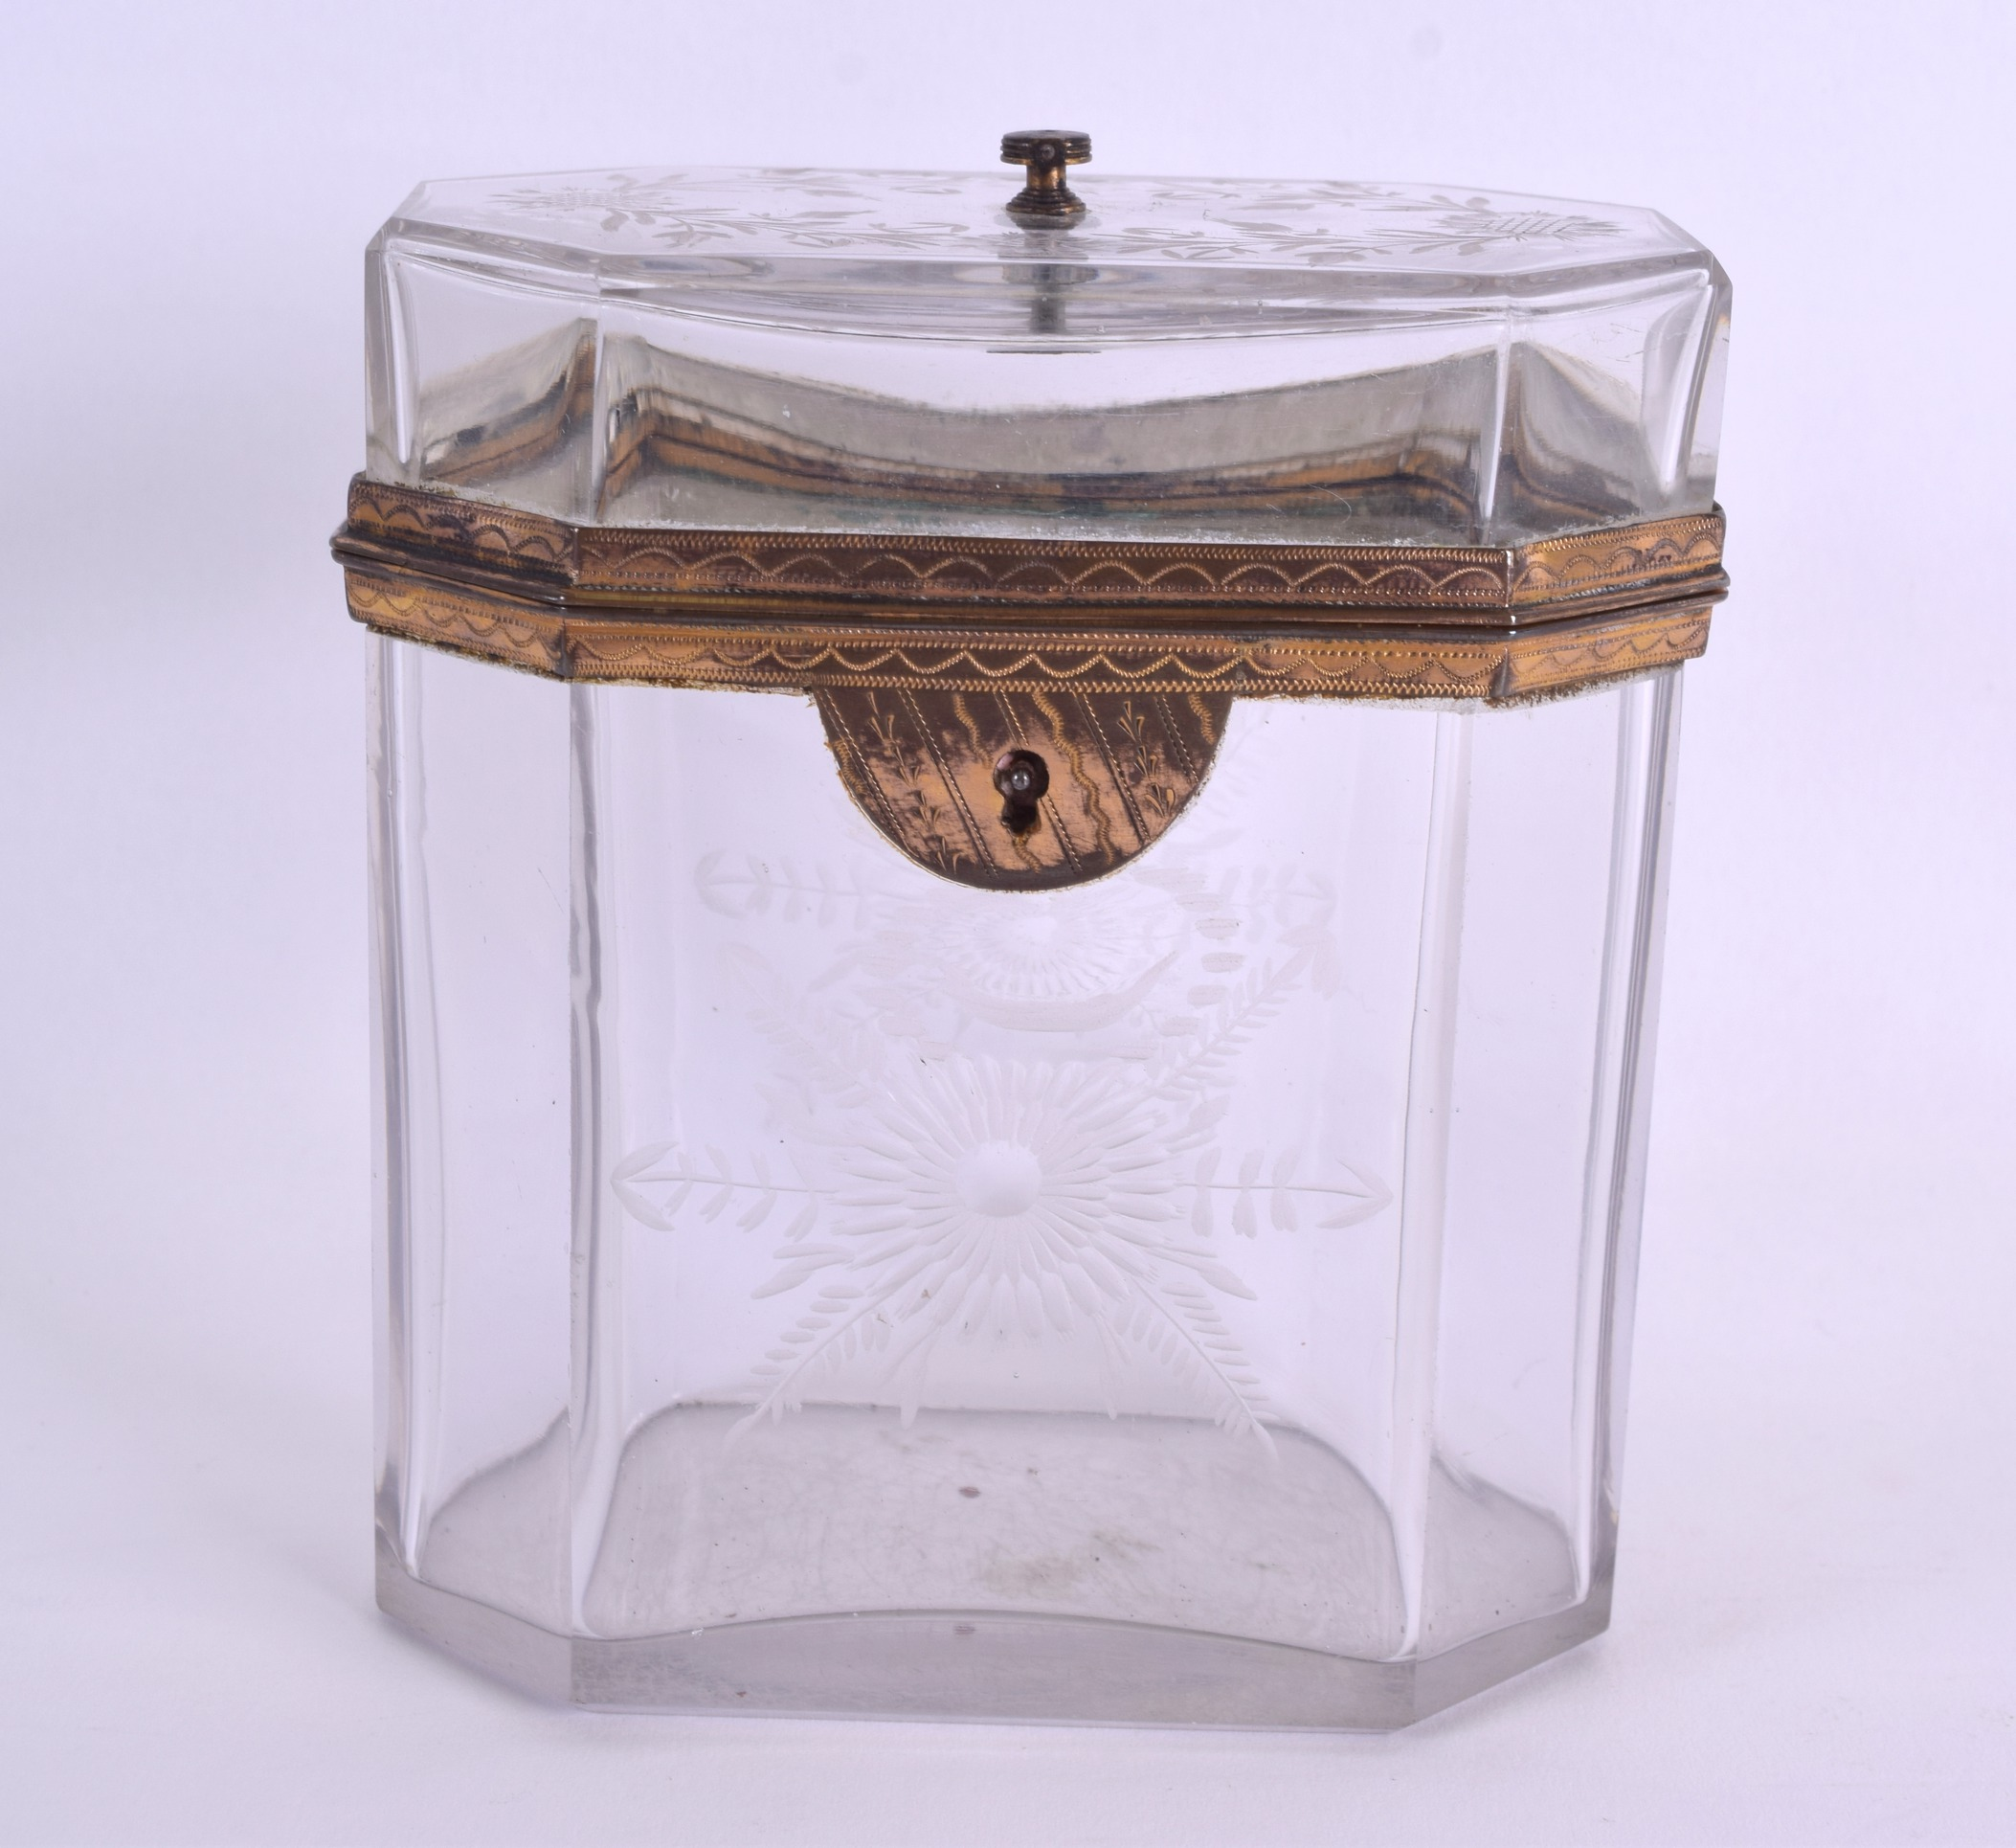 Lot 29 - AN UNUSUAL EARLY 19TH CENTURY CRYSTAL GLASS TEA CADDY engraved with flowers and vines. 12 cm x 10